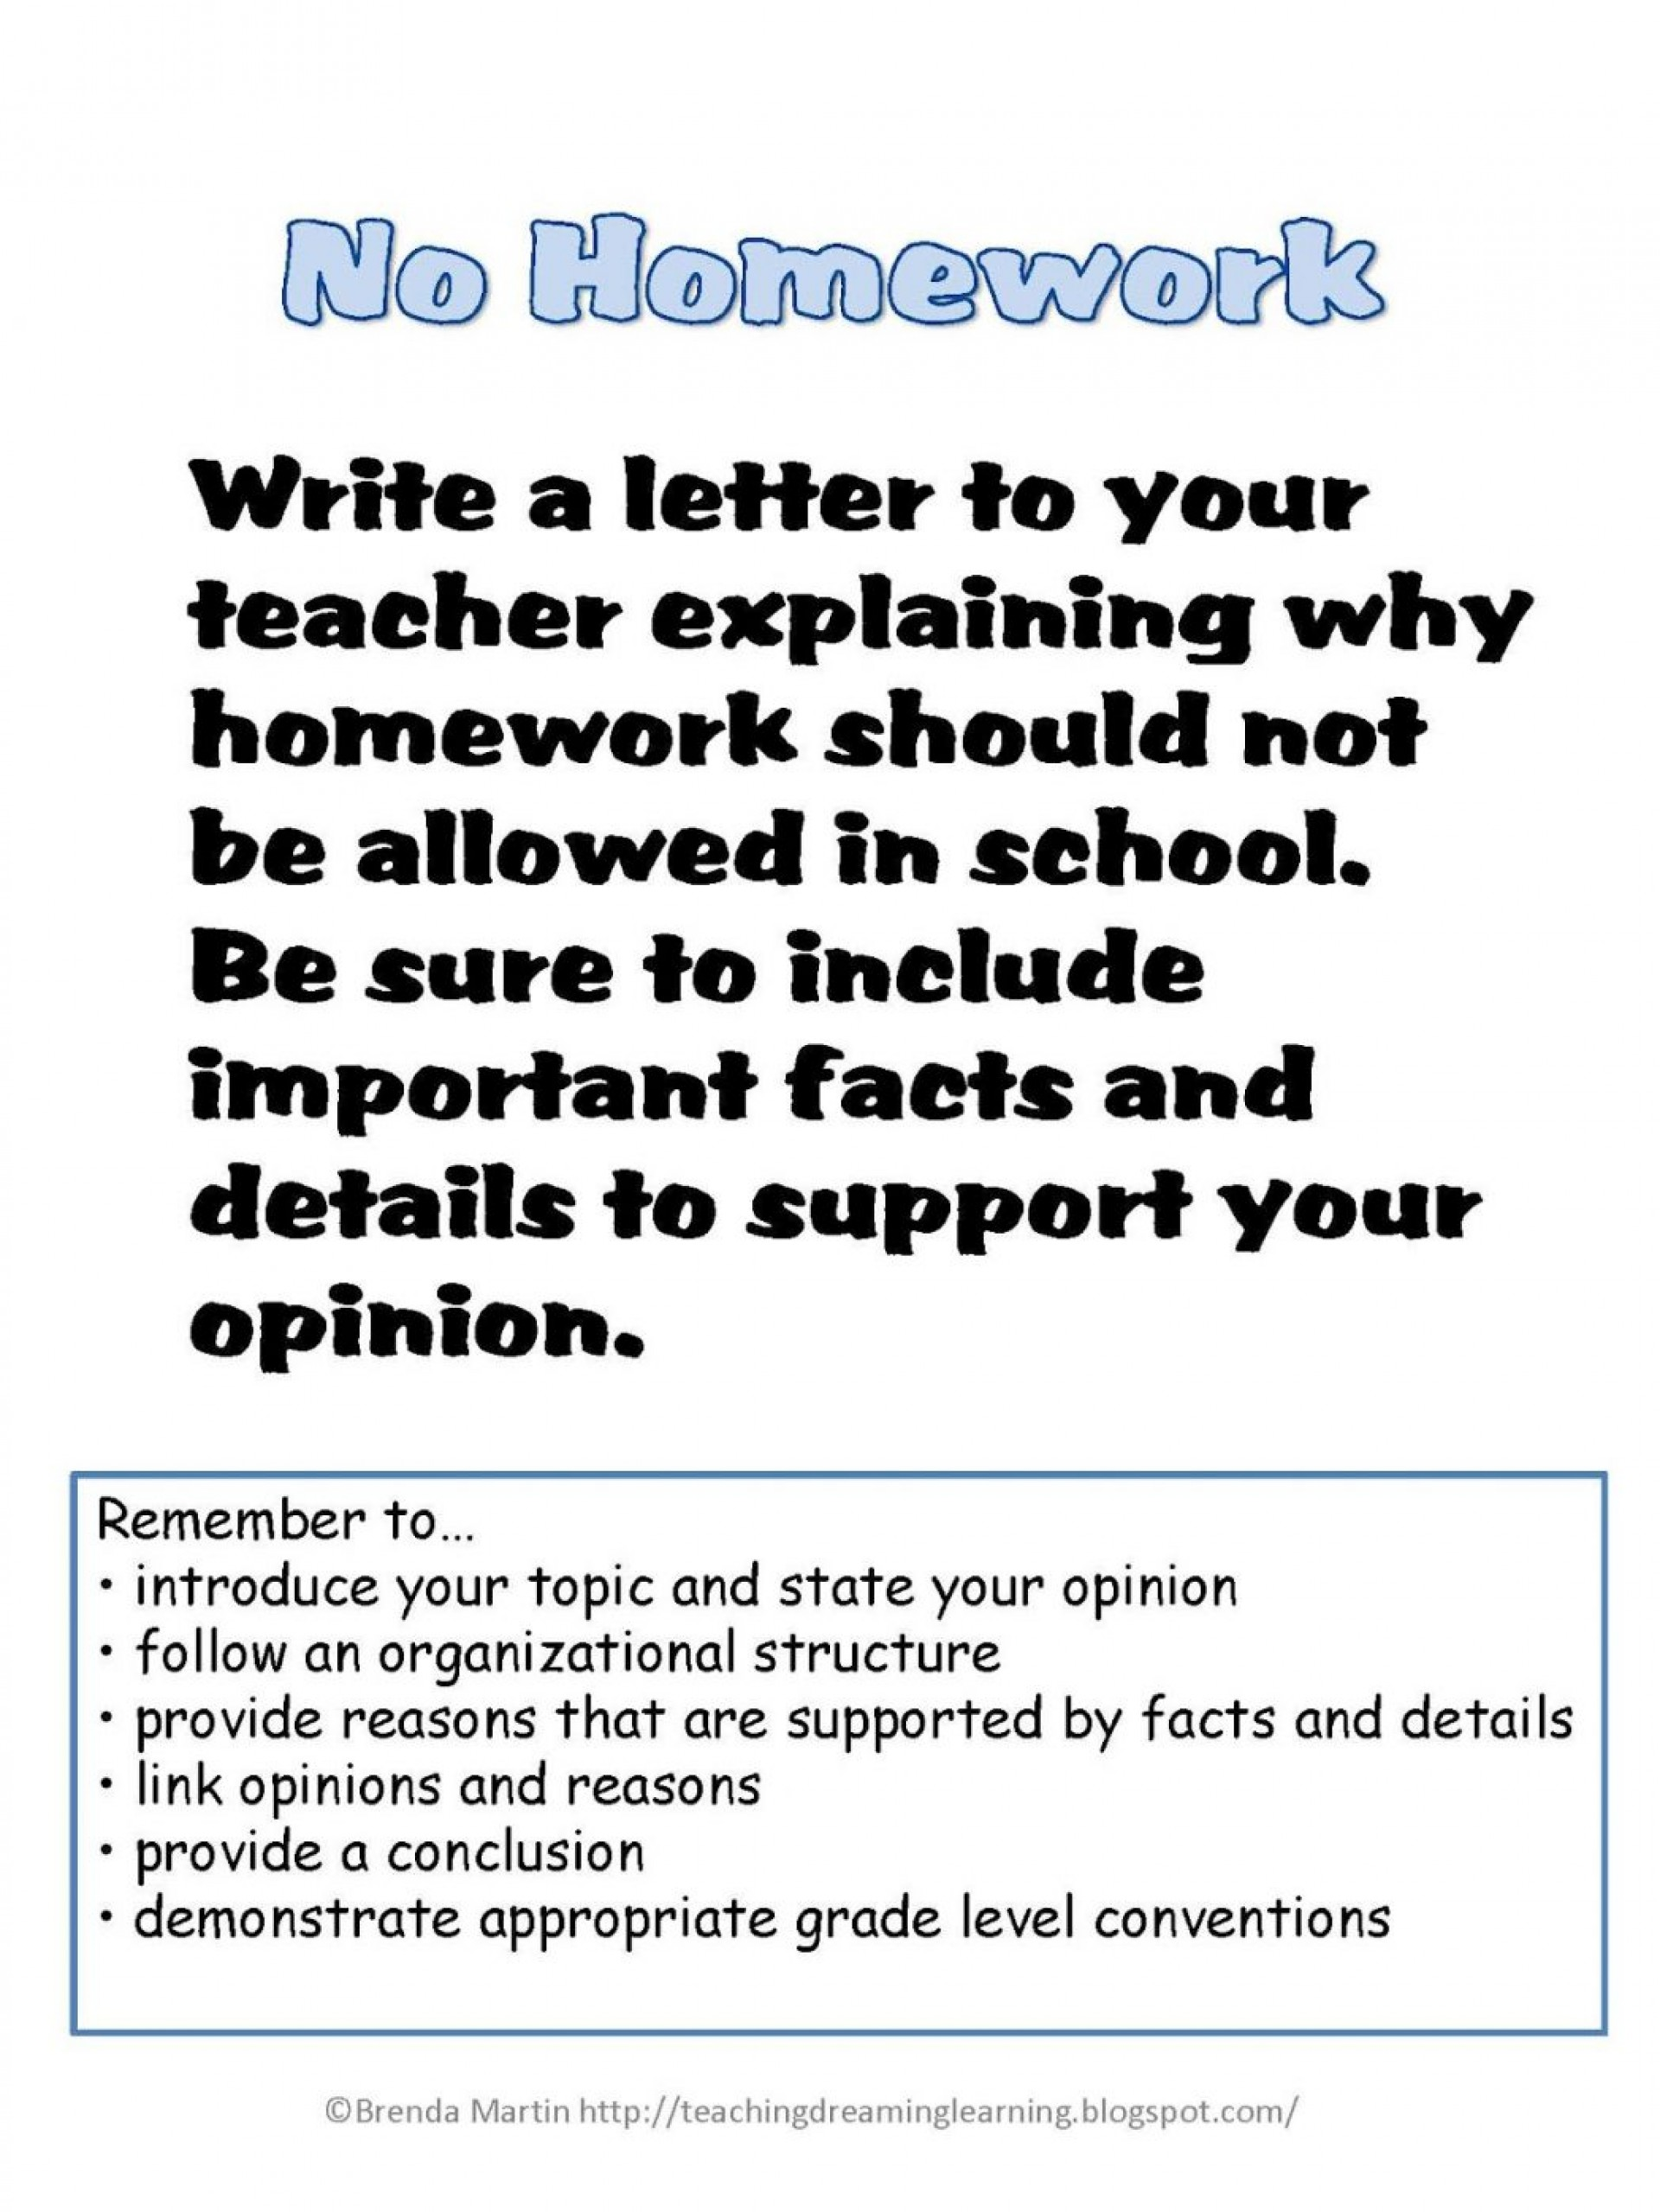 009 Essay Topics For Year Persuasive Sixth Grade Custom Paper Service Ruhomeworkkofd Students Writing Prompts1 Pa Argumentative 6th Graders Speech Prompts 1048x1397 Archaicawful 9 Questions Olds Igcse 1920